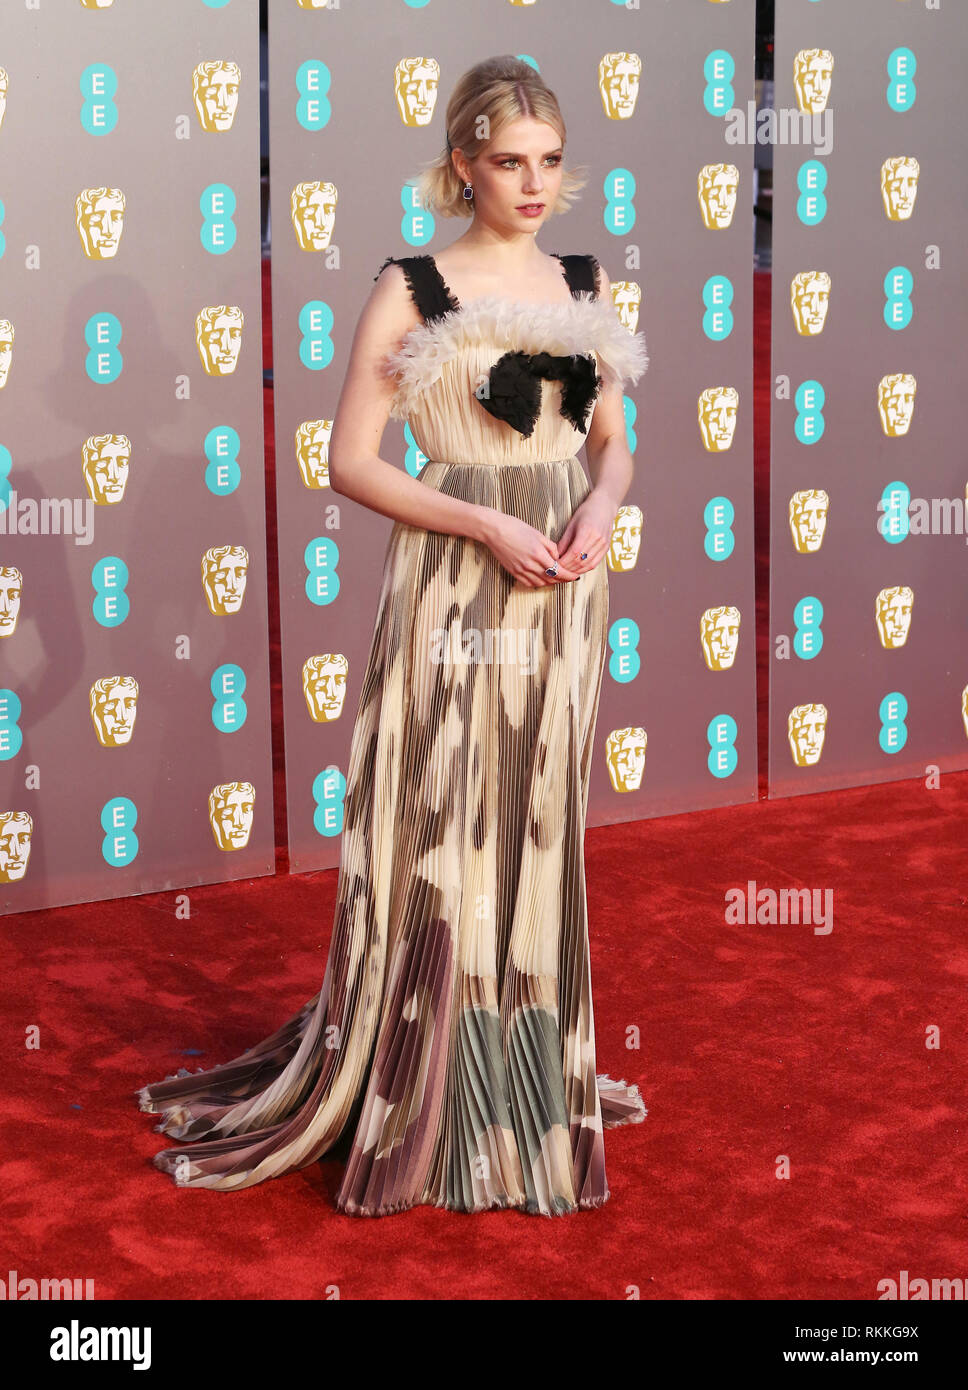 Lucy Boynton Seen On The Red Carpet During The British Academy Film Awards 2019 At The Royal Albert Hall In London Stock Photo Alamy